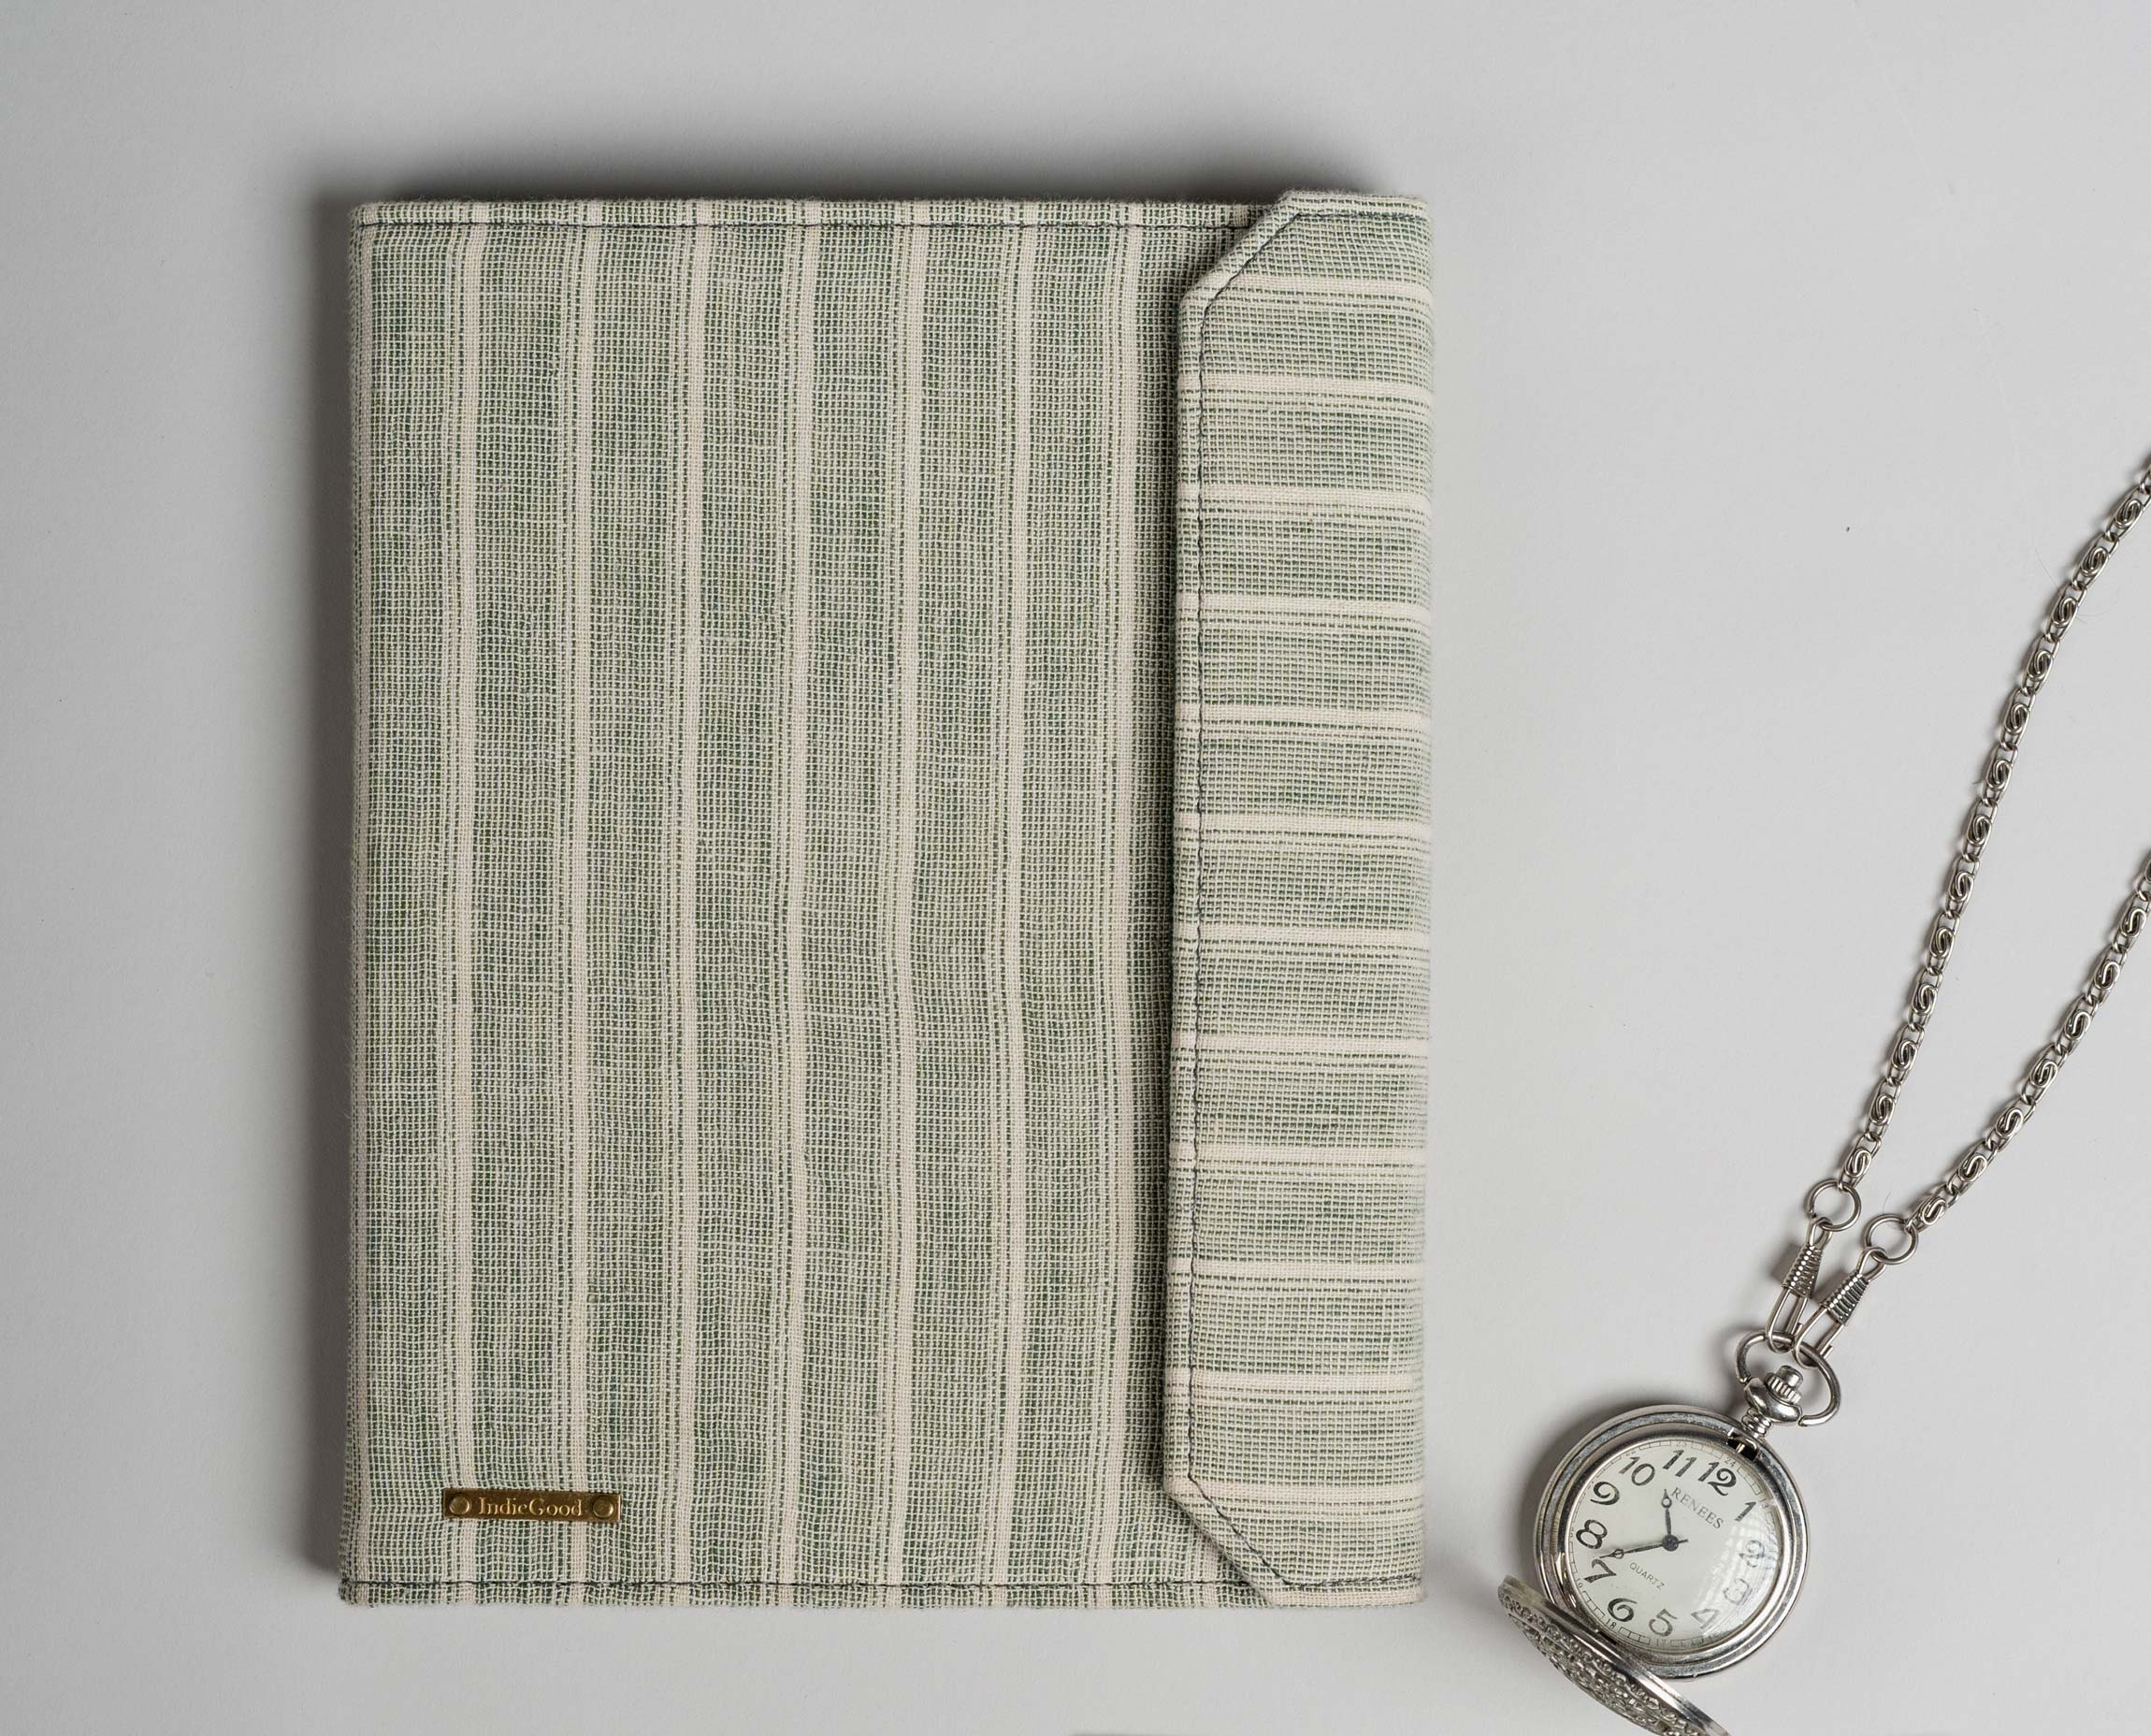 In a world full of screens, writing in a physical diary is more of a meditative process than just jotting something down. This diary organizer helps you keep your journaling and writing habits organised and comfortable in an overly distracted and digitized world. It comes with an A5 size diary made of handmade paper and is super convenient to carry along on the go.